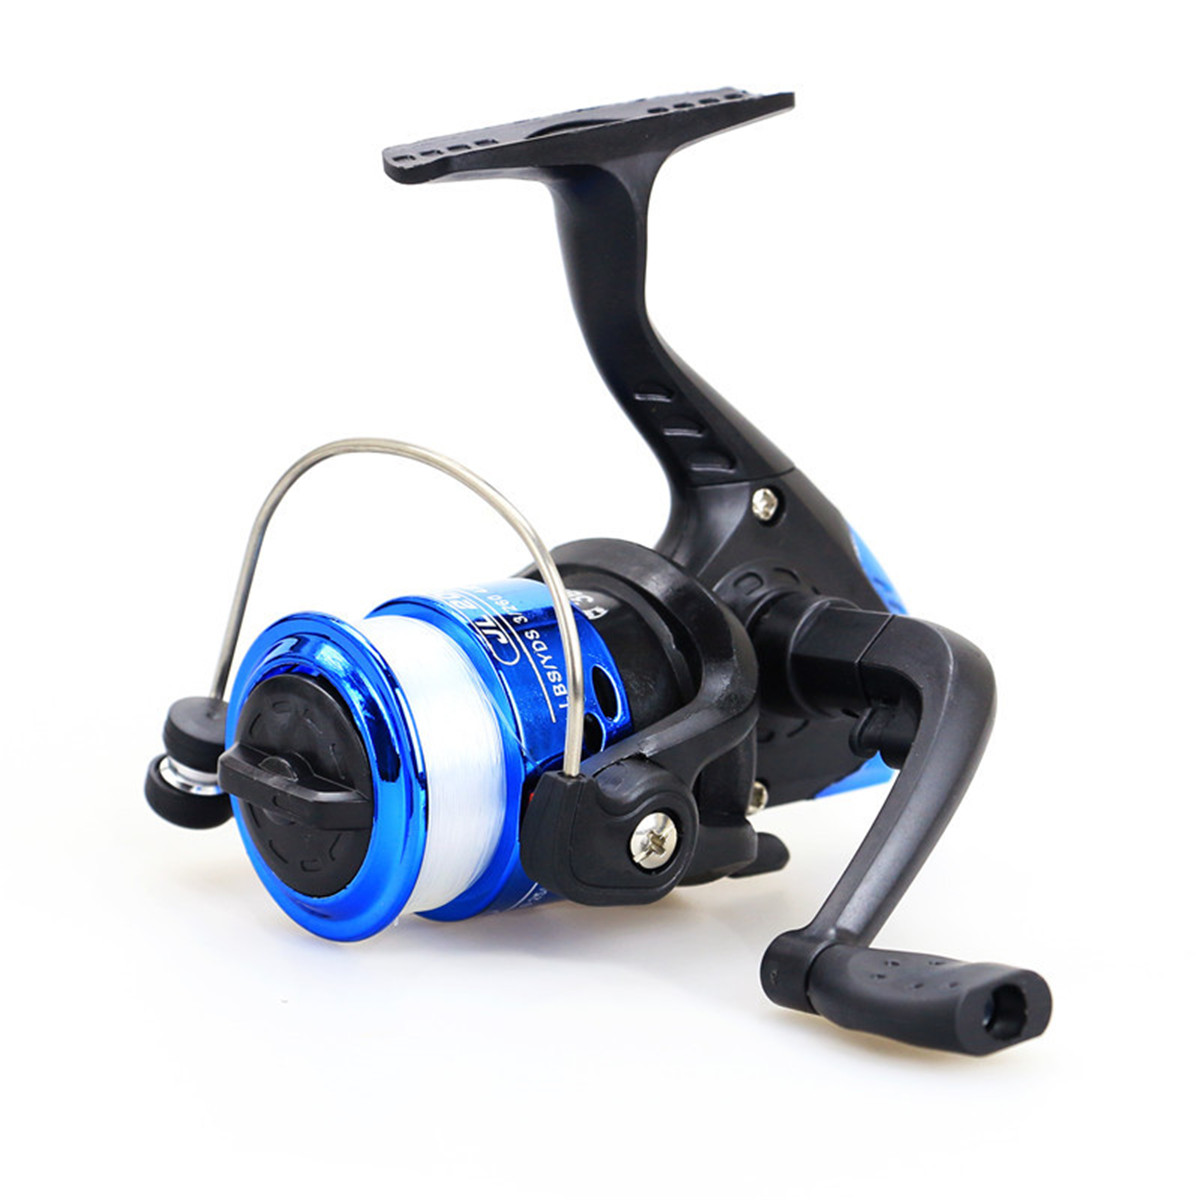 ZANLURE 5.2:1 3BB Spinning Fishing Wheel L/R Handle Saltwater Freshwater Fishing Reel